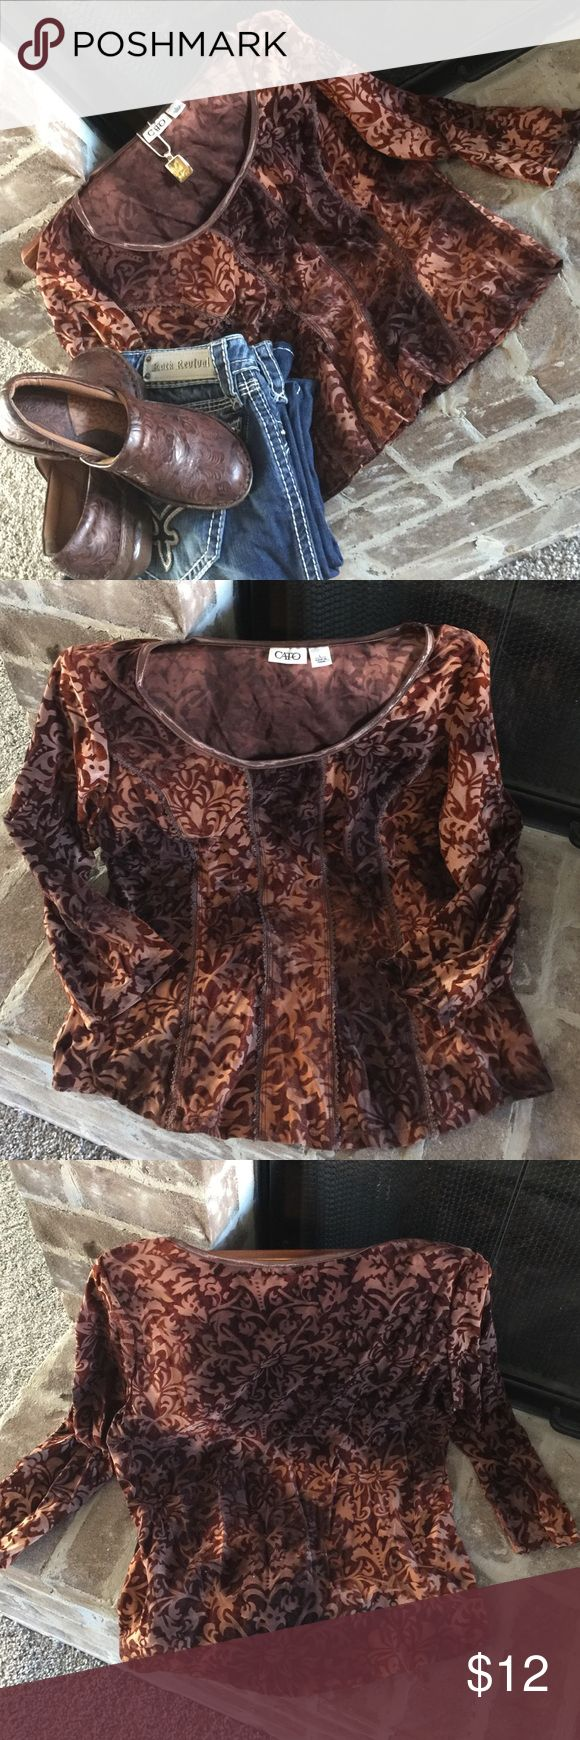 Stunning velvet feel Blouse Made of spandex, polyester, and nylon with a raised velvet design makes this one gorgeous blouse💓. EUC Tops